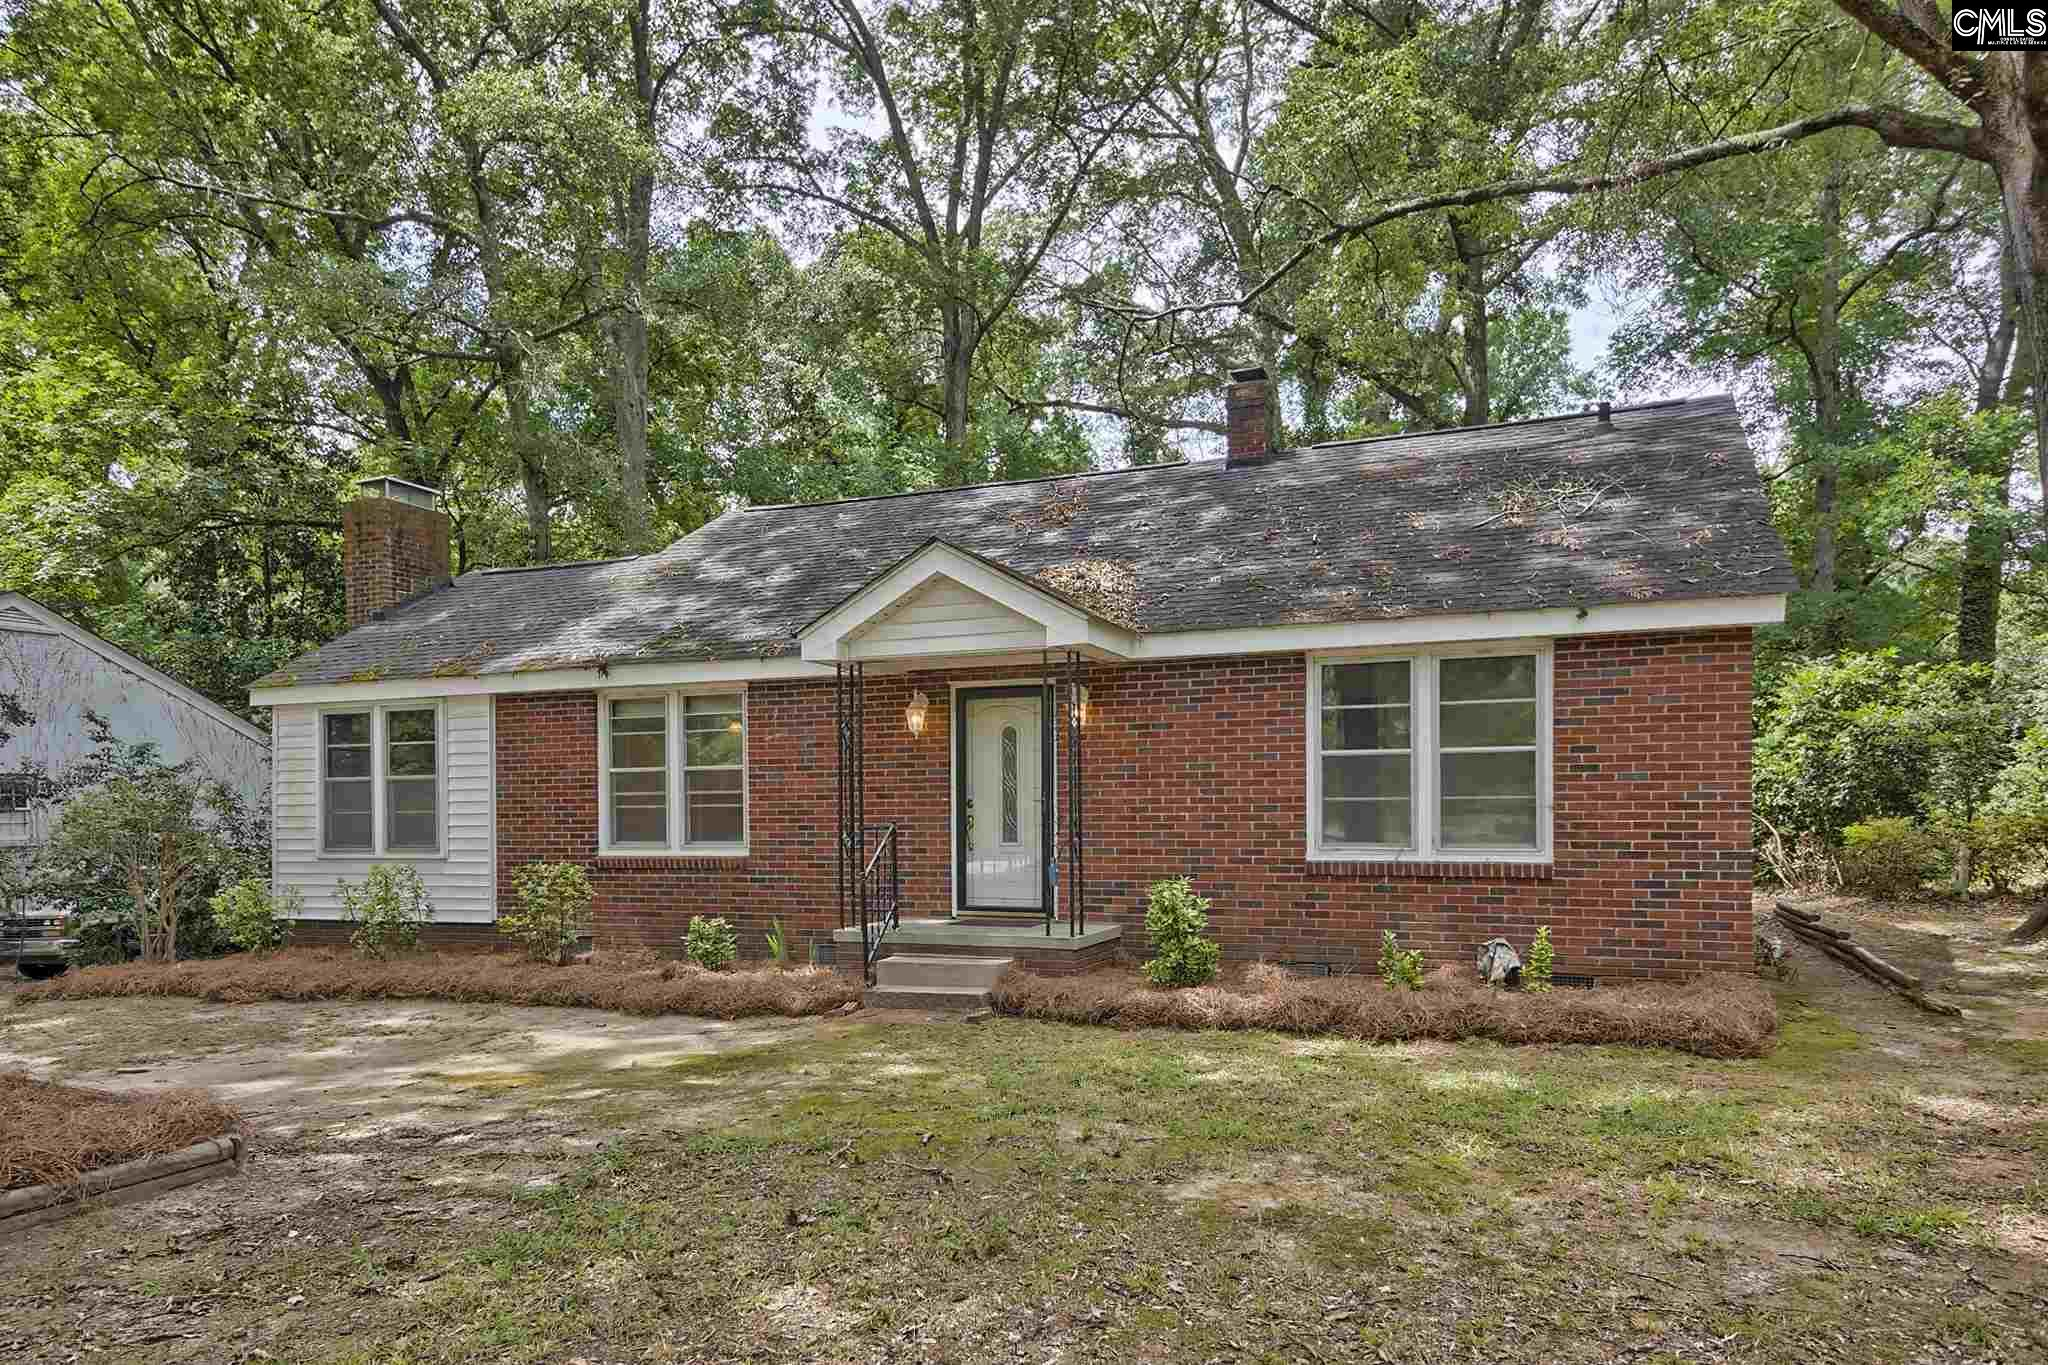 116 Summerlea Columbia, SC 29203